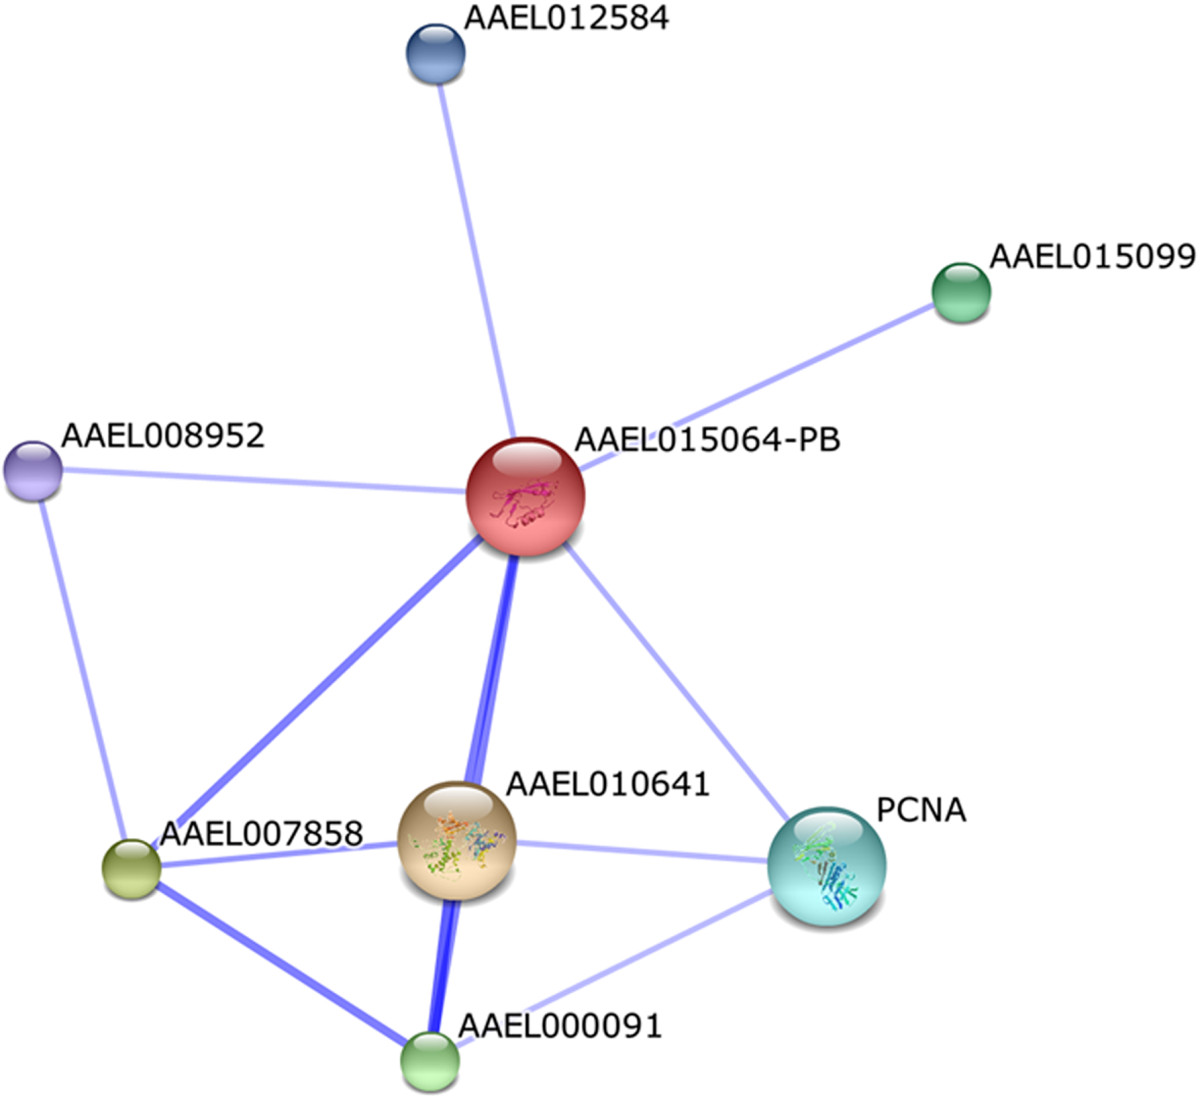 http://static-content.springer.com/image/art%3A10.1186%2F1756-3305-5-290/MediaObjects/13071_2012_Article_817_Fig4_HTML.jpg